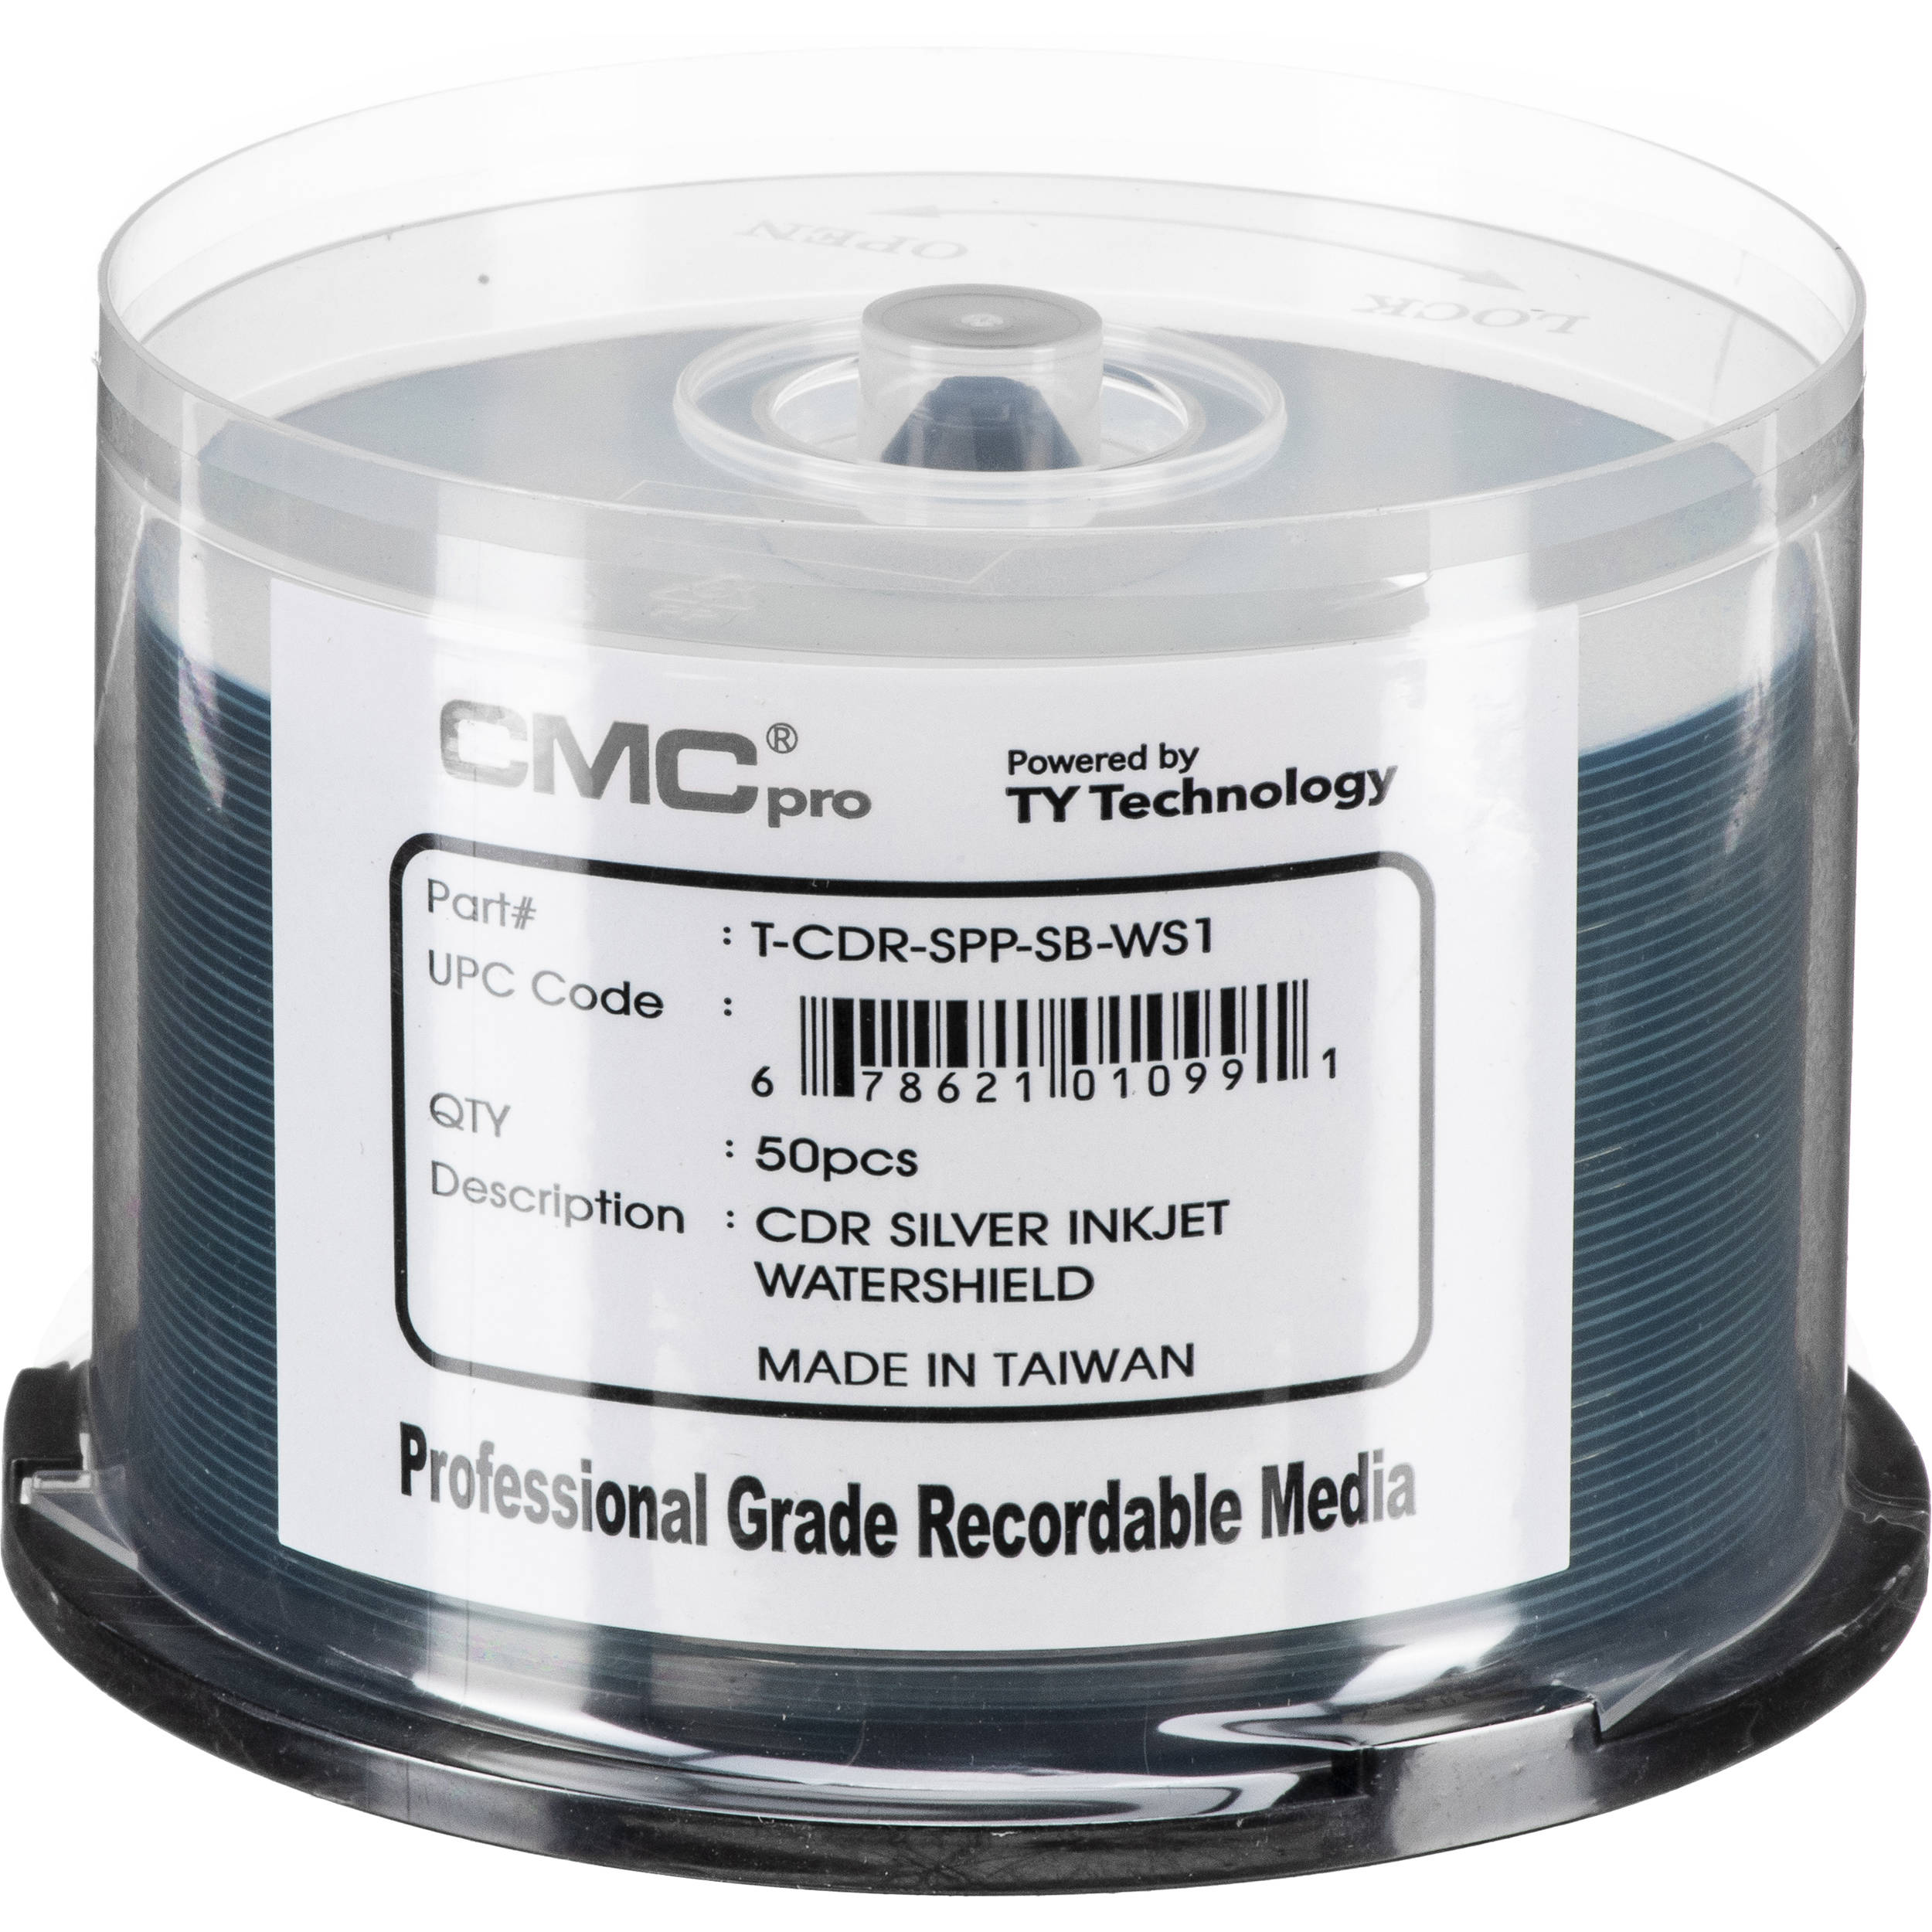 photograph relating to Cd R Printable called CMC Qualified 700MB CD-R WaterShield Silver Printable 48x Discs (Pack of 50)